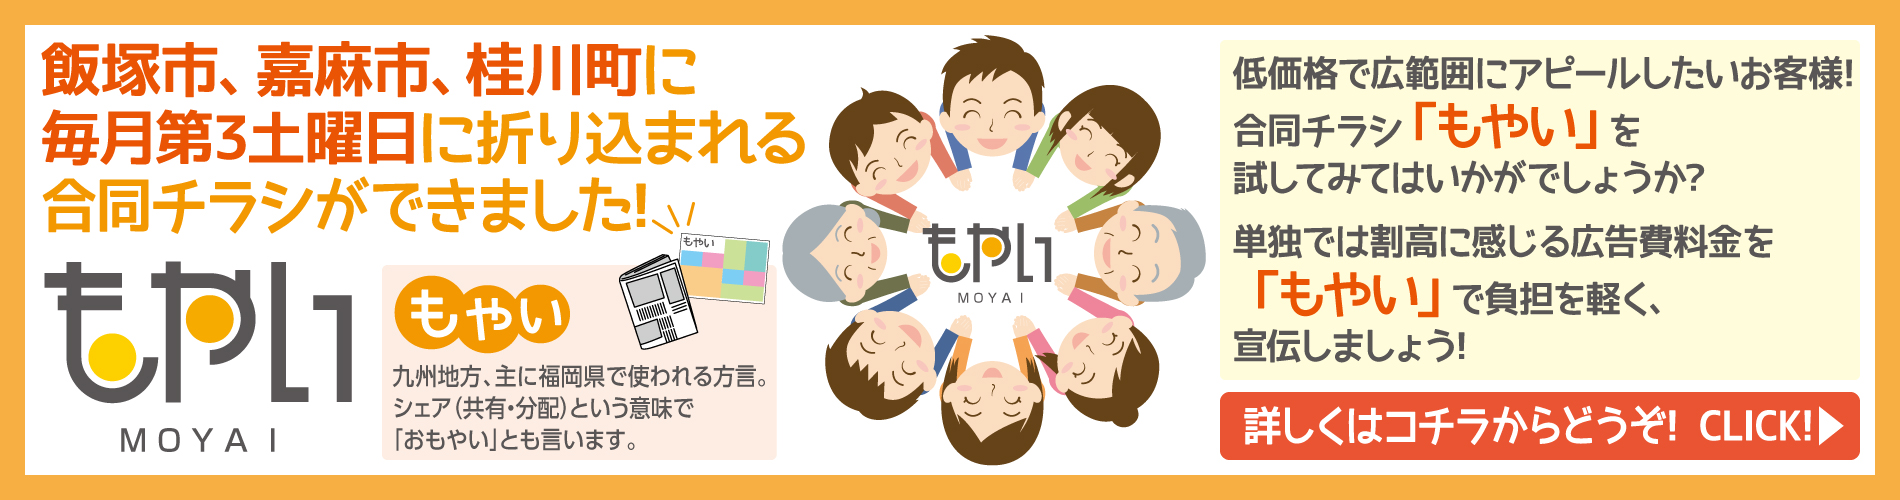 https://eee.world-p.co.jp/moyai